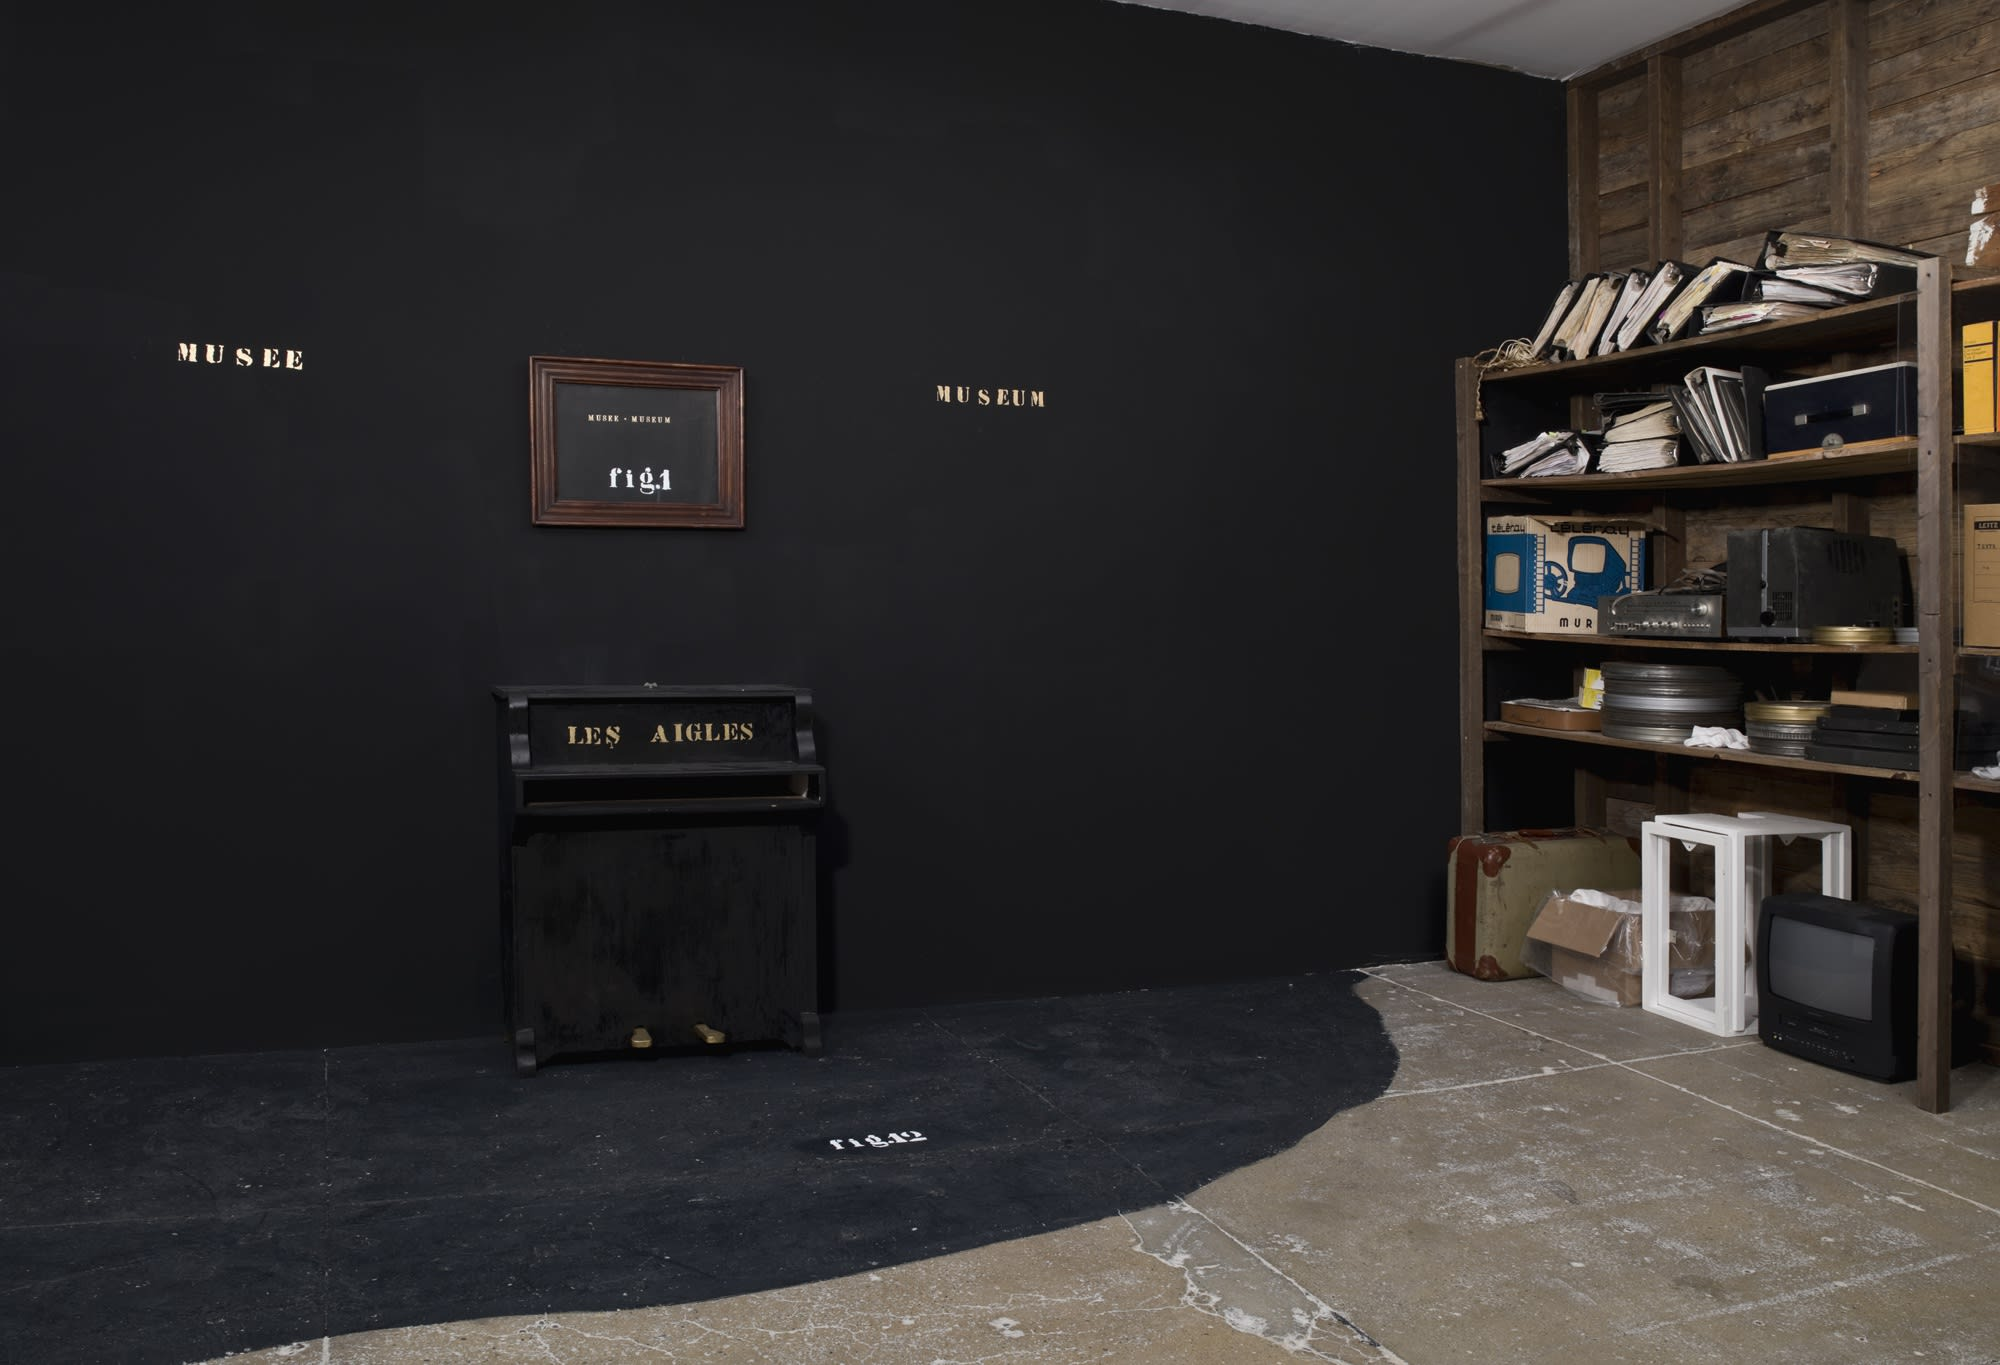 On a black wall, gold text reads MUSEE and MUSEUM on either side of a wood frame containing a black painting that reads the same thing, along with: fig. 1, in white text. Under it, gold text on a black baby piano reads: DES AIGLES. On the right wall, a wo